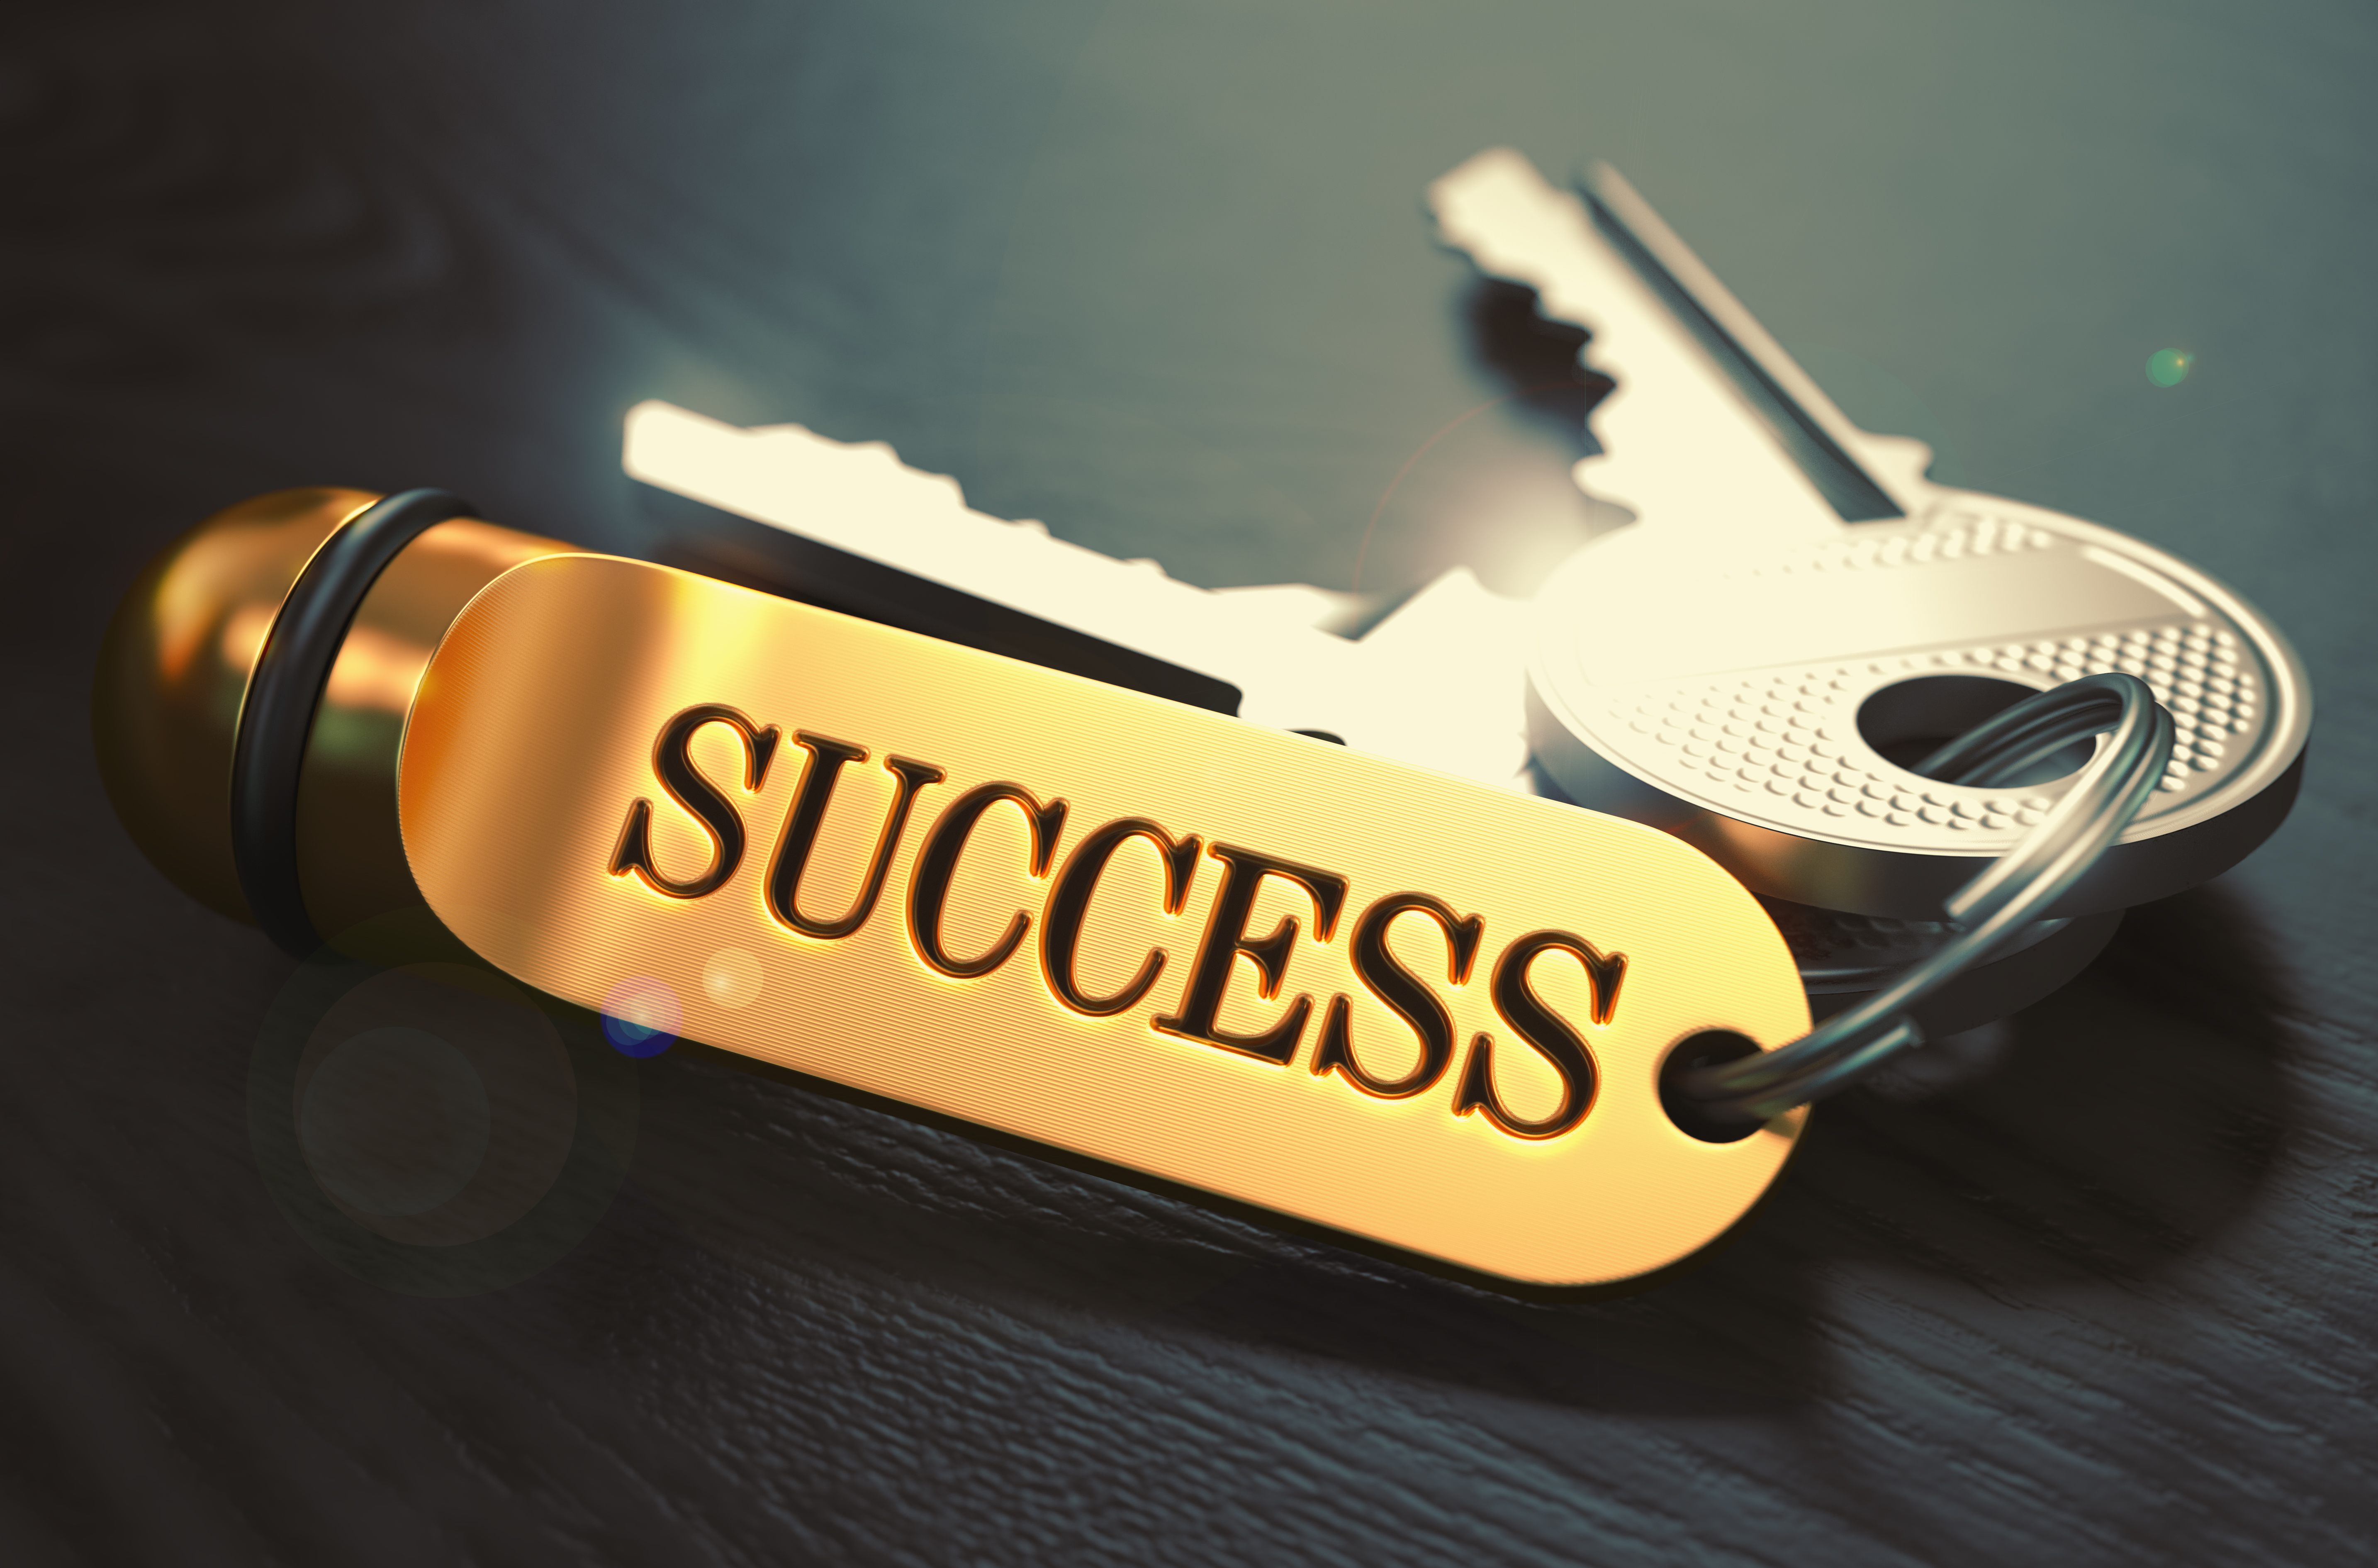 Keys to Success. Concept on Golden Keychain.